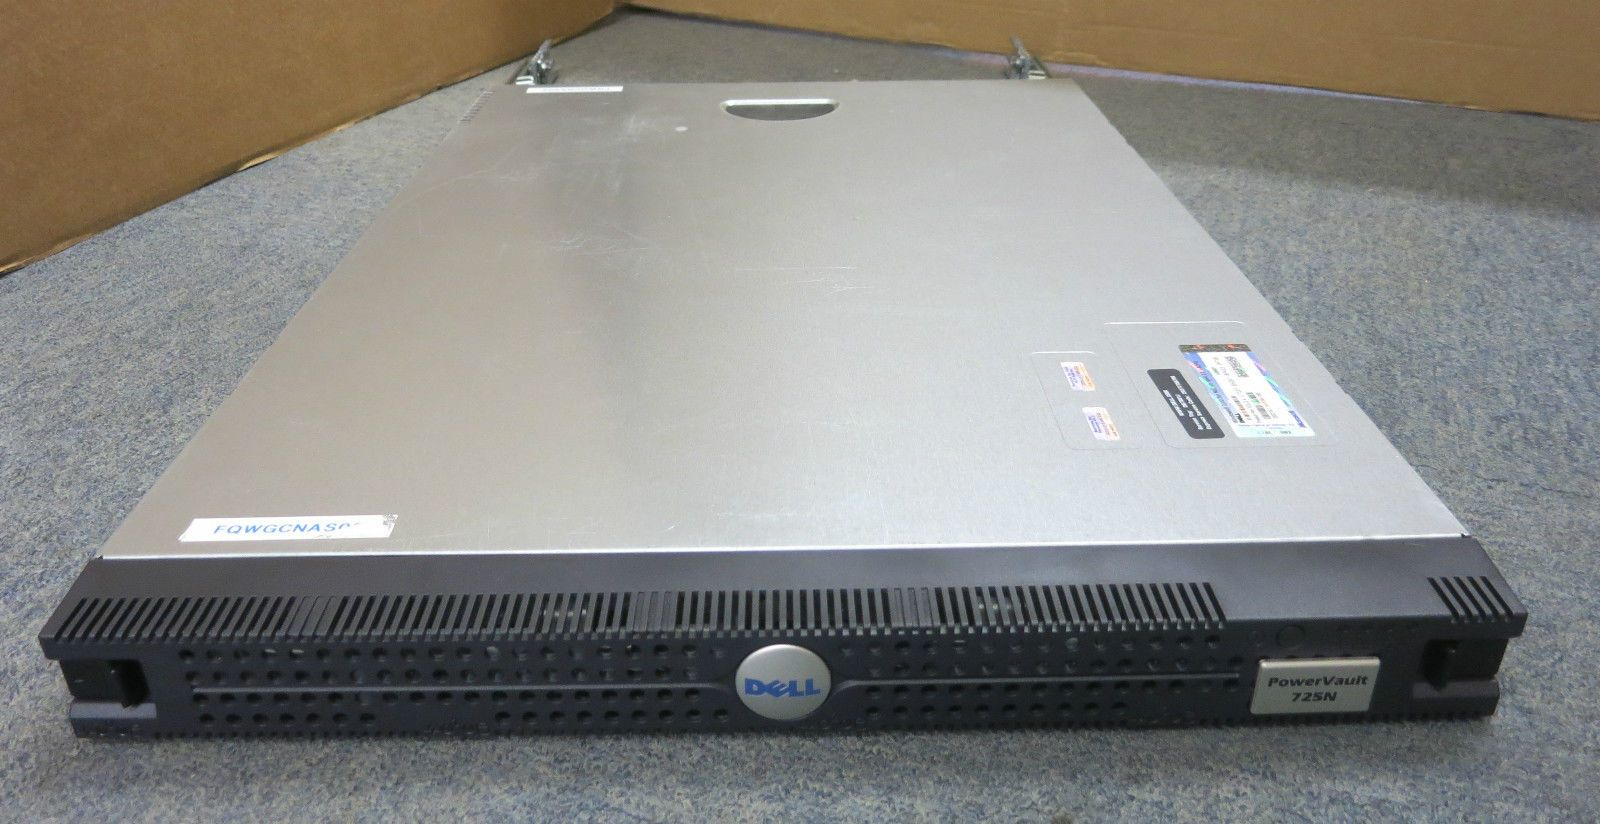 Dell PowerVault 725N